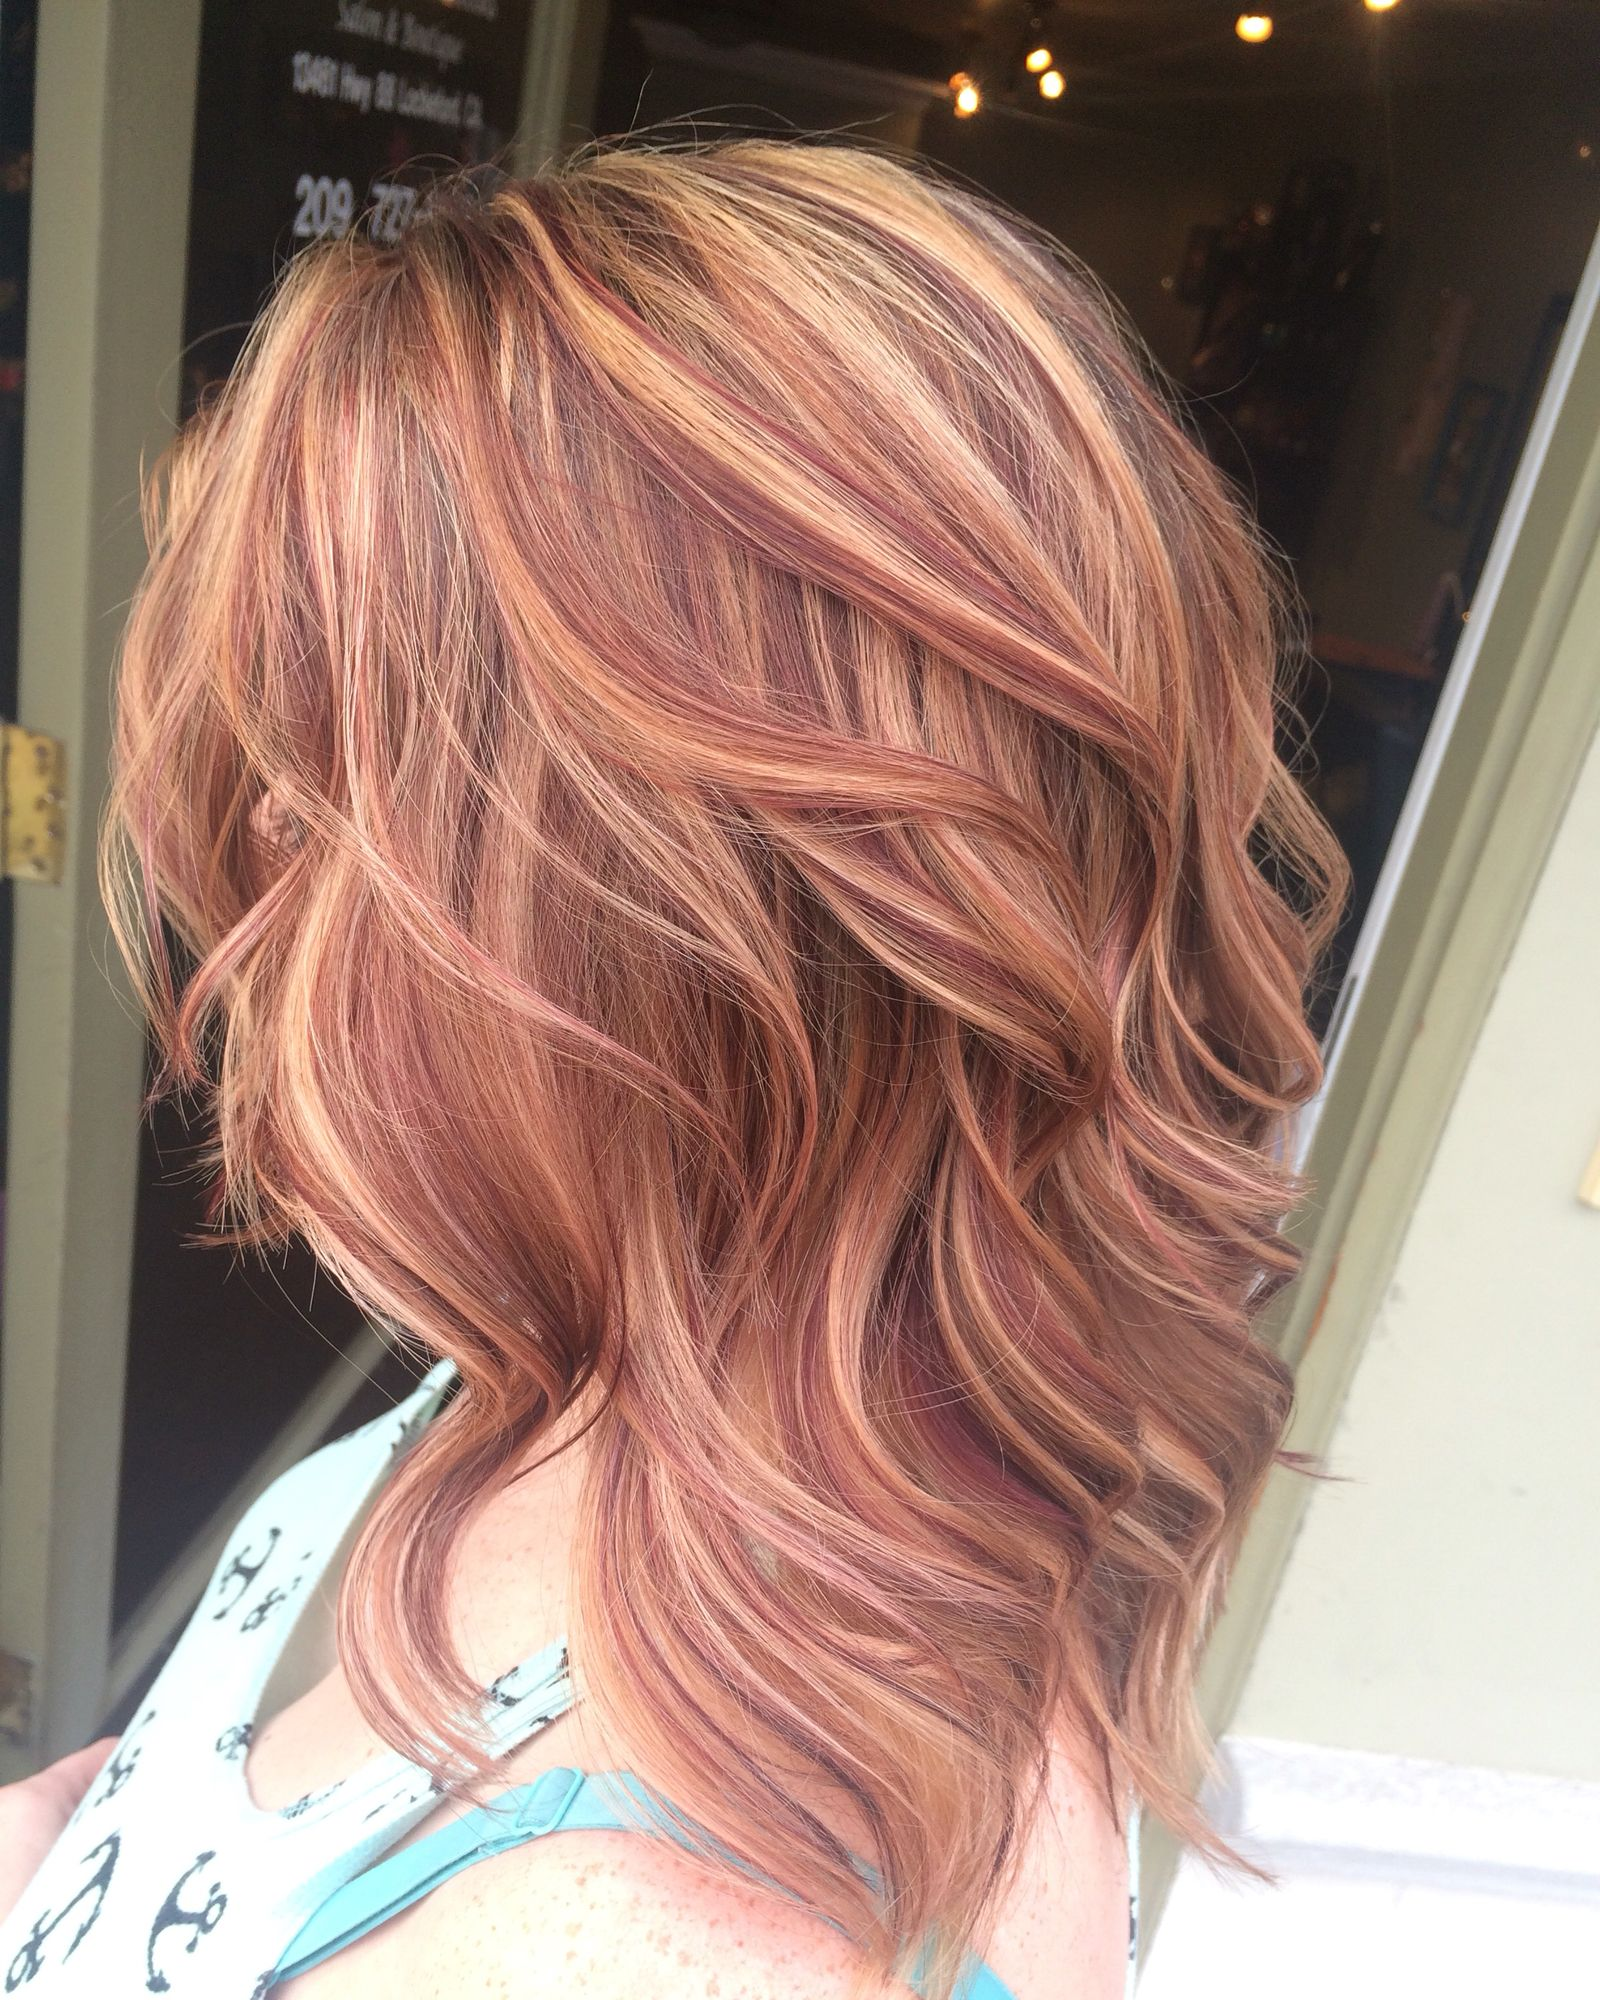 Blonde hair red hair medium hair | Hair and makeup ...